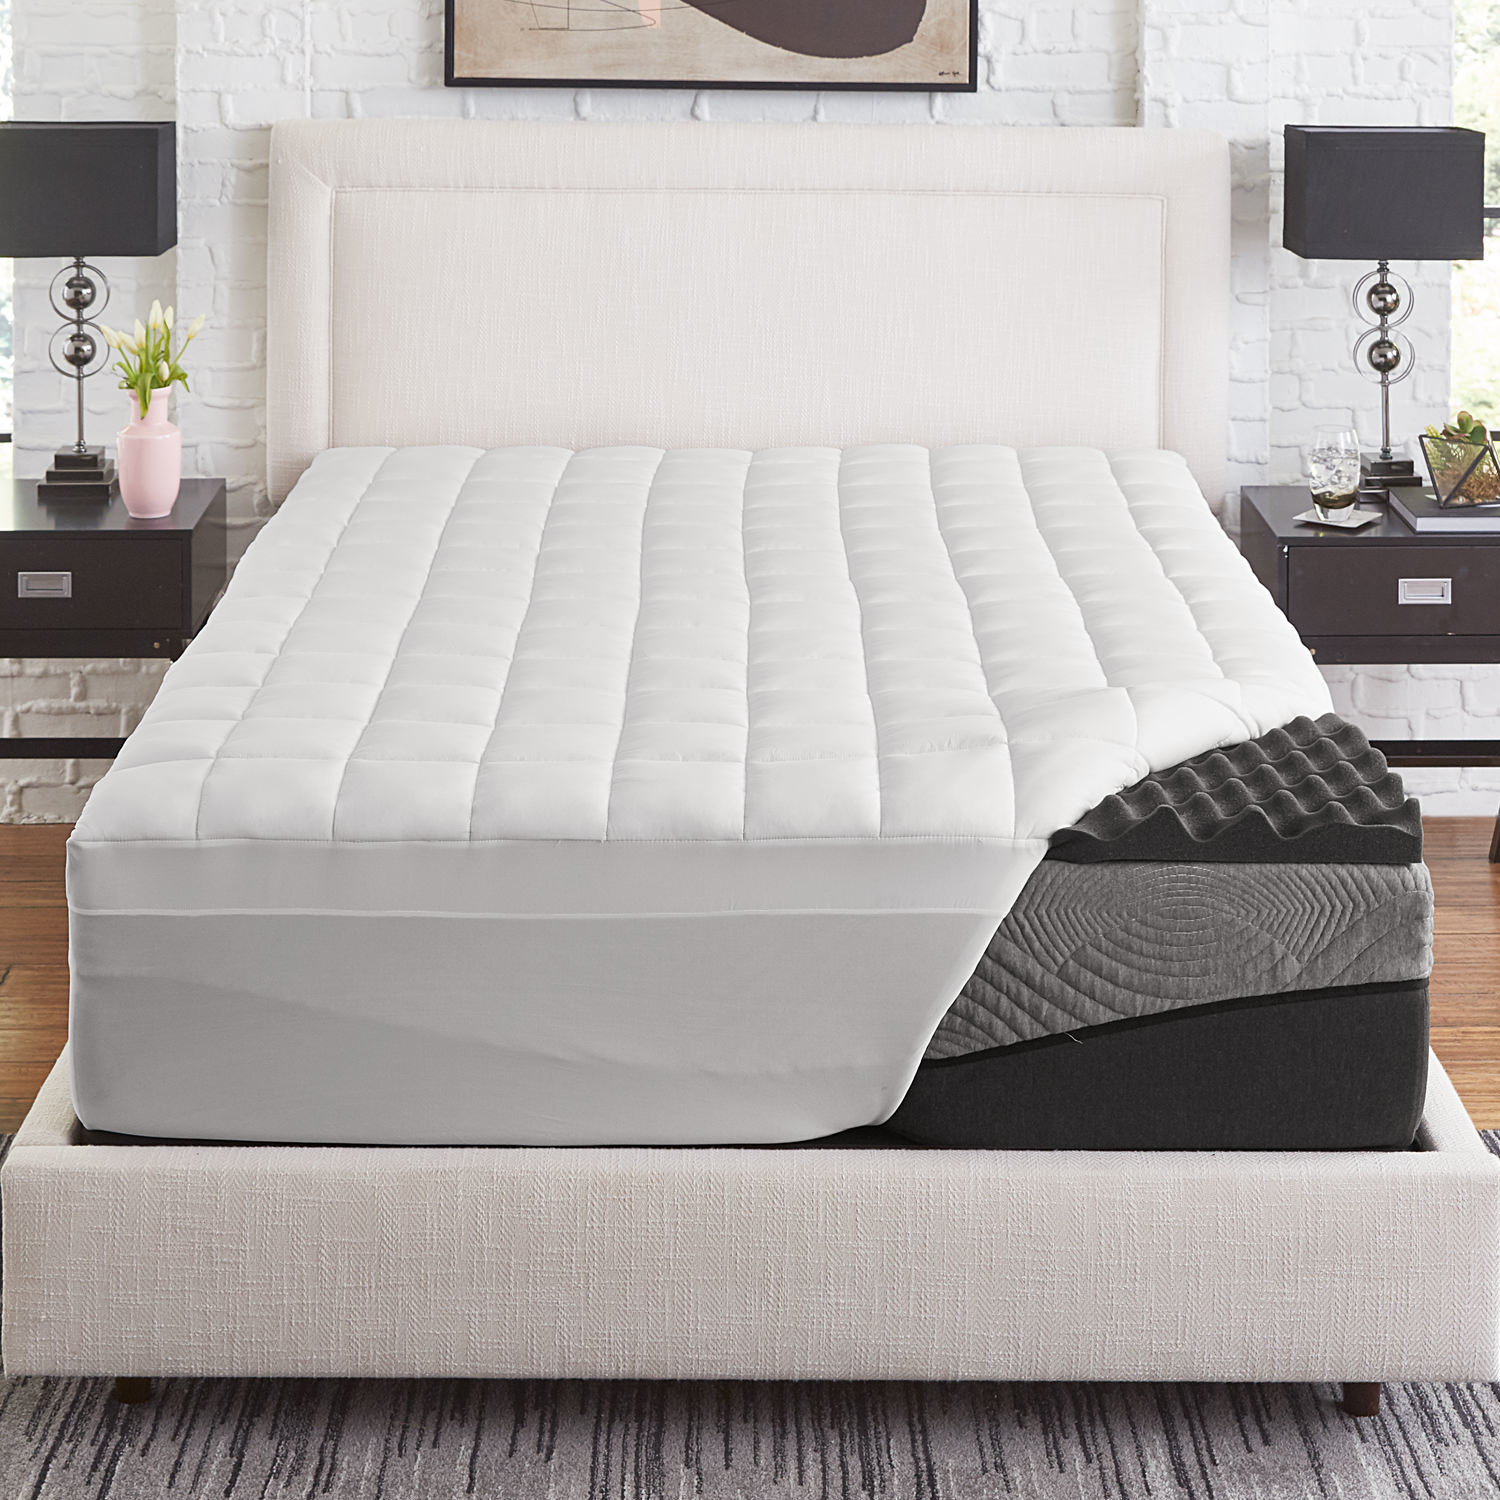 Memory Foam Mattress Too Firm Slumber Solutions Active 2 5 Inch Big Bump Charcoal Memory Foam With 1 5 Inch Fiber Cover